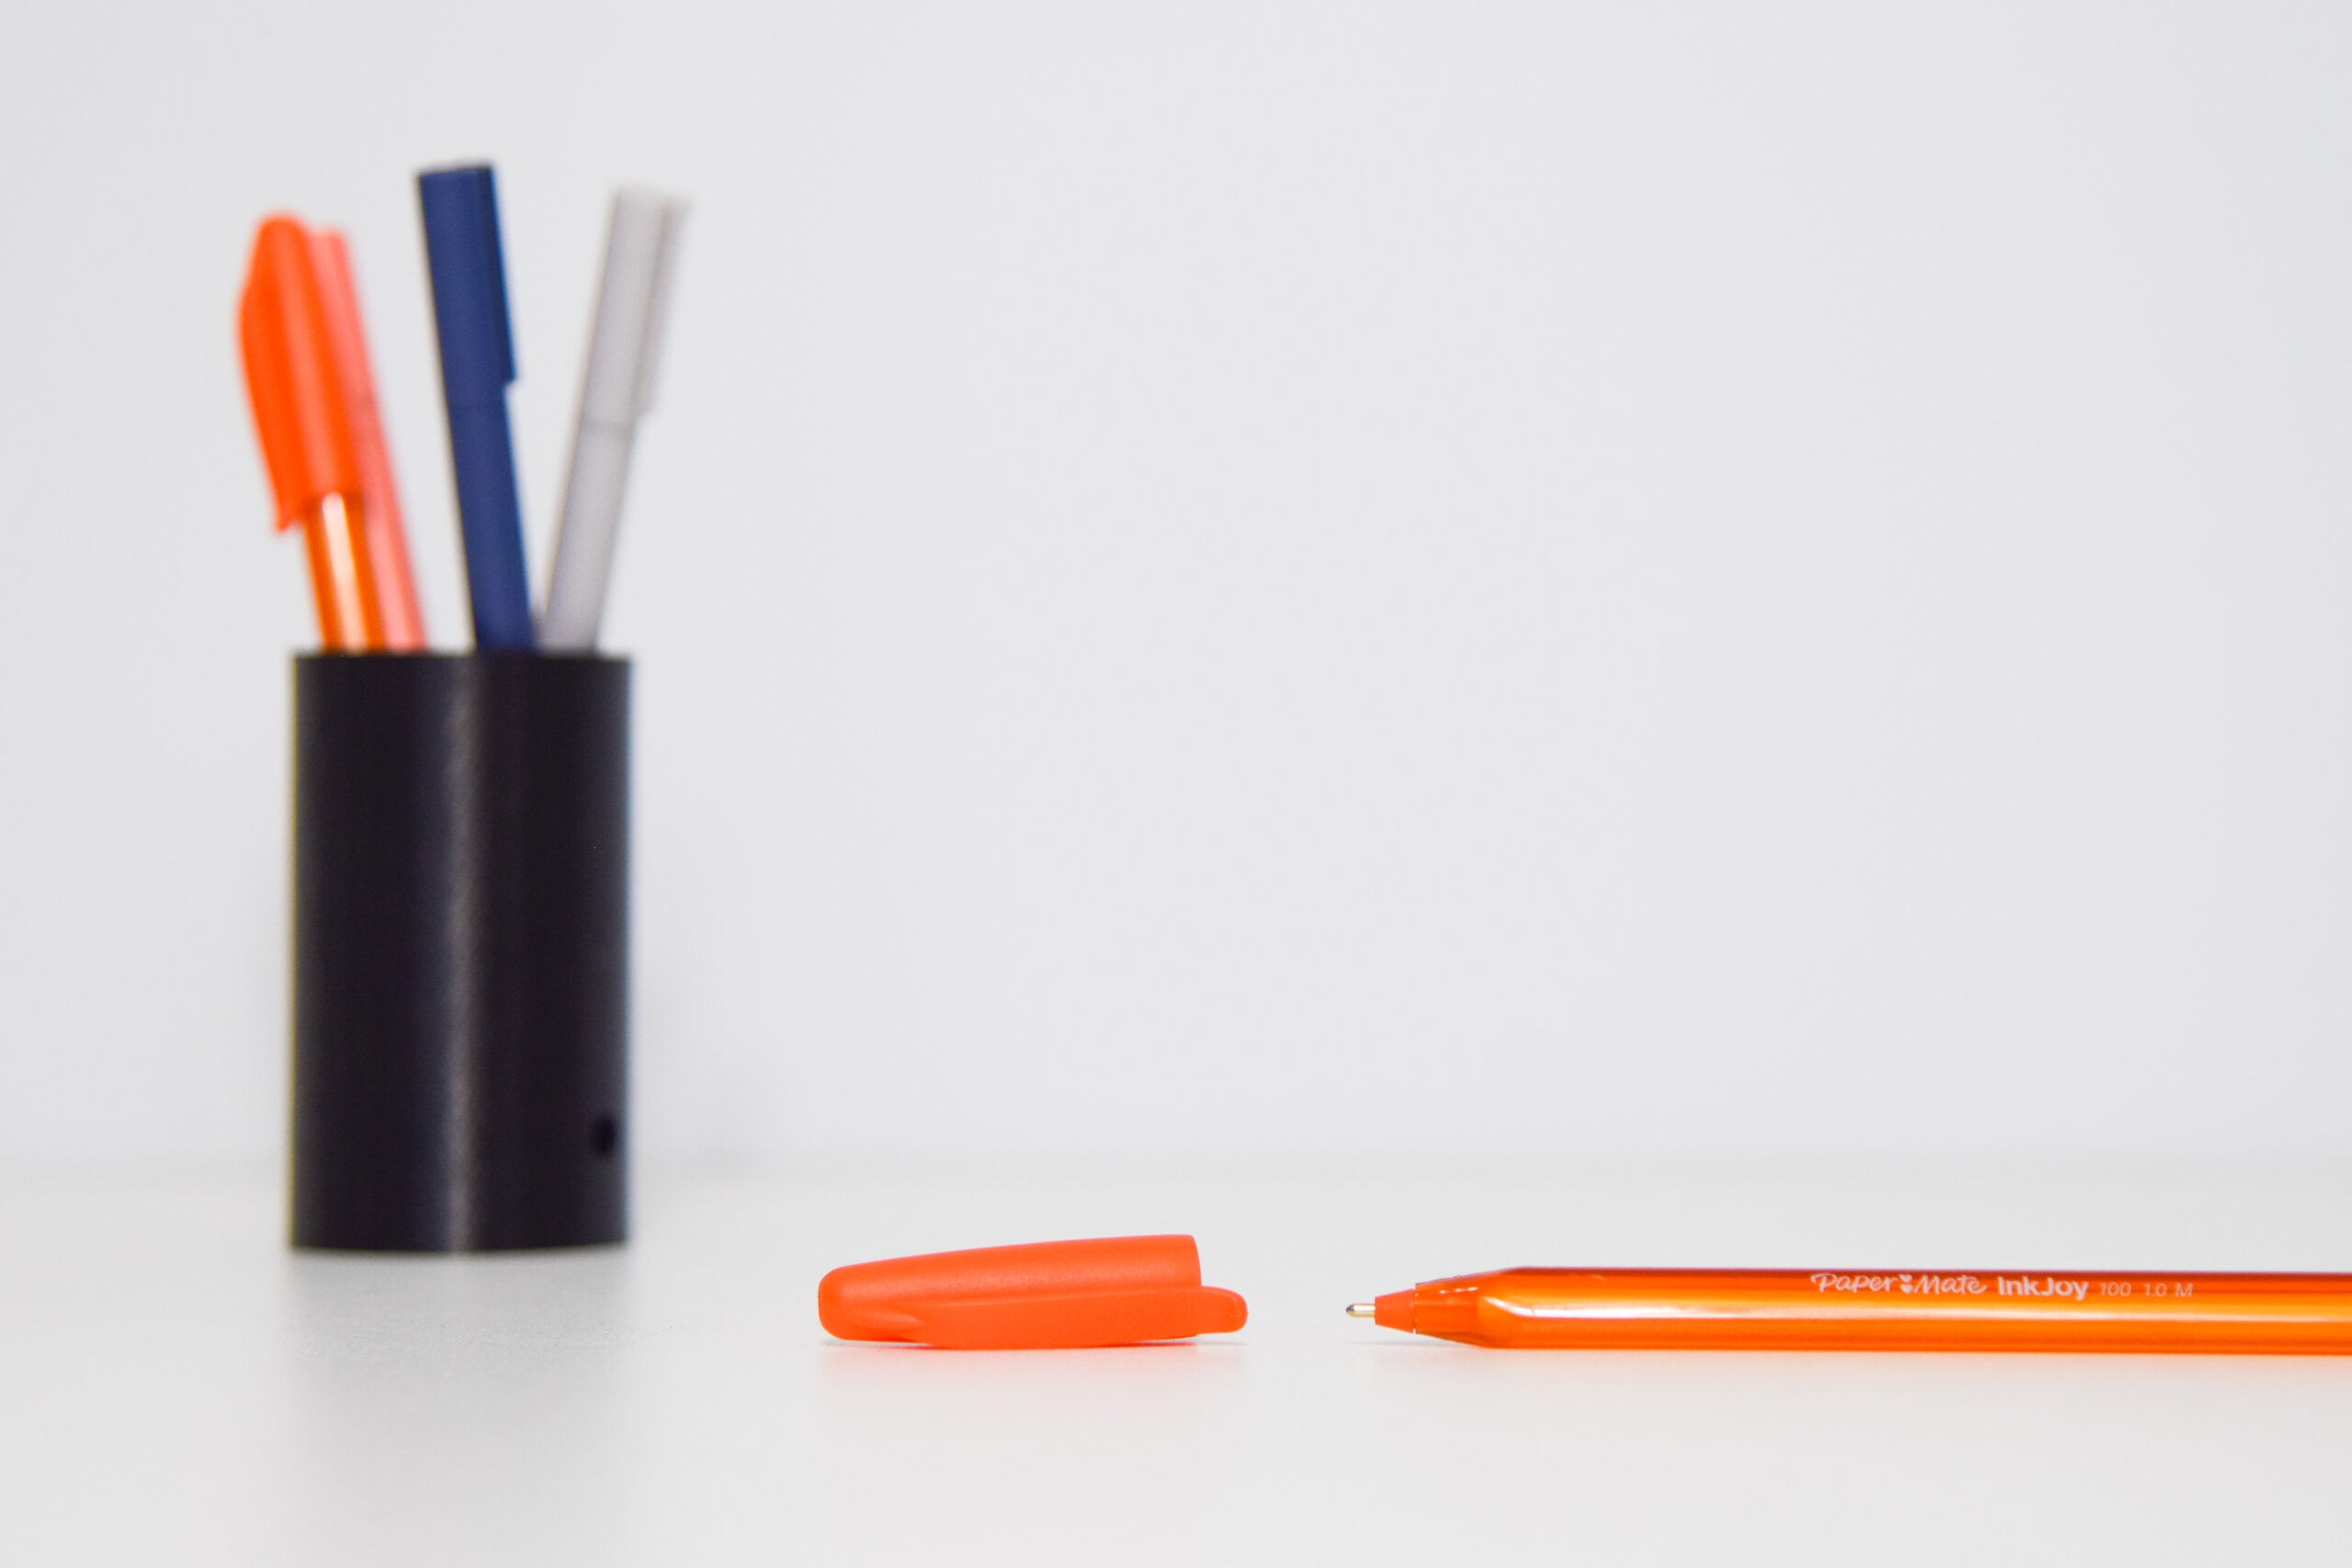 A black pen holder holds 4 pens (2 orange, 1 navy and 1 grey), and an orange pen lays with its cap off in front of it.